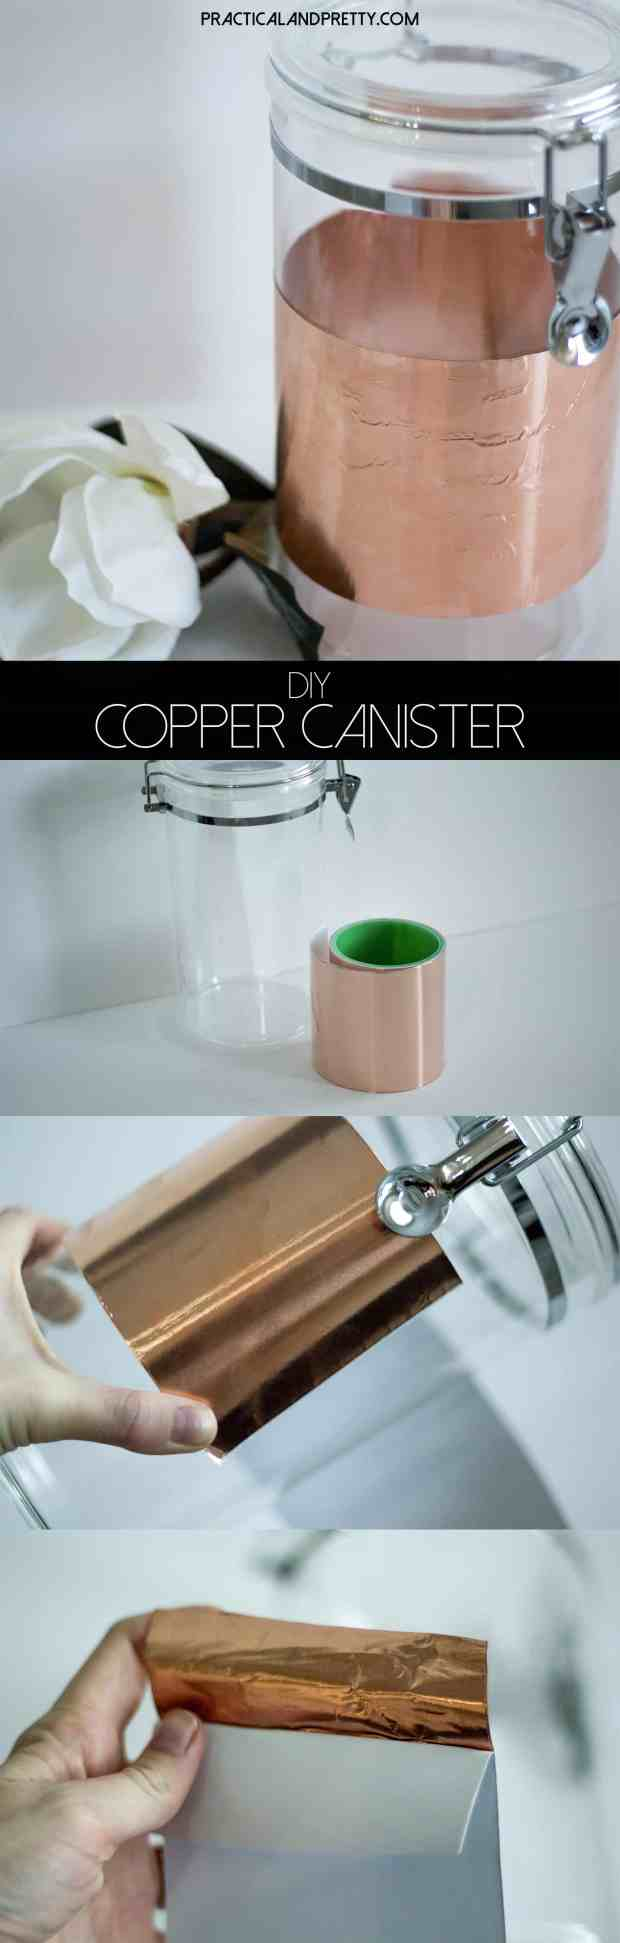 This is a super simple DIY that will make any kitchen canister worthy of your counter.